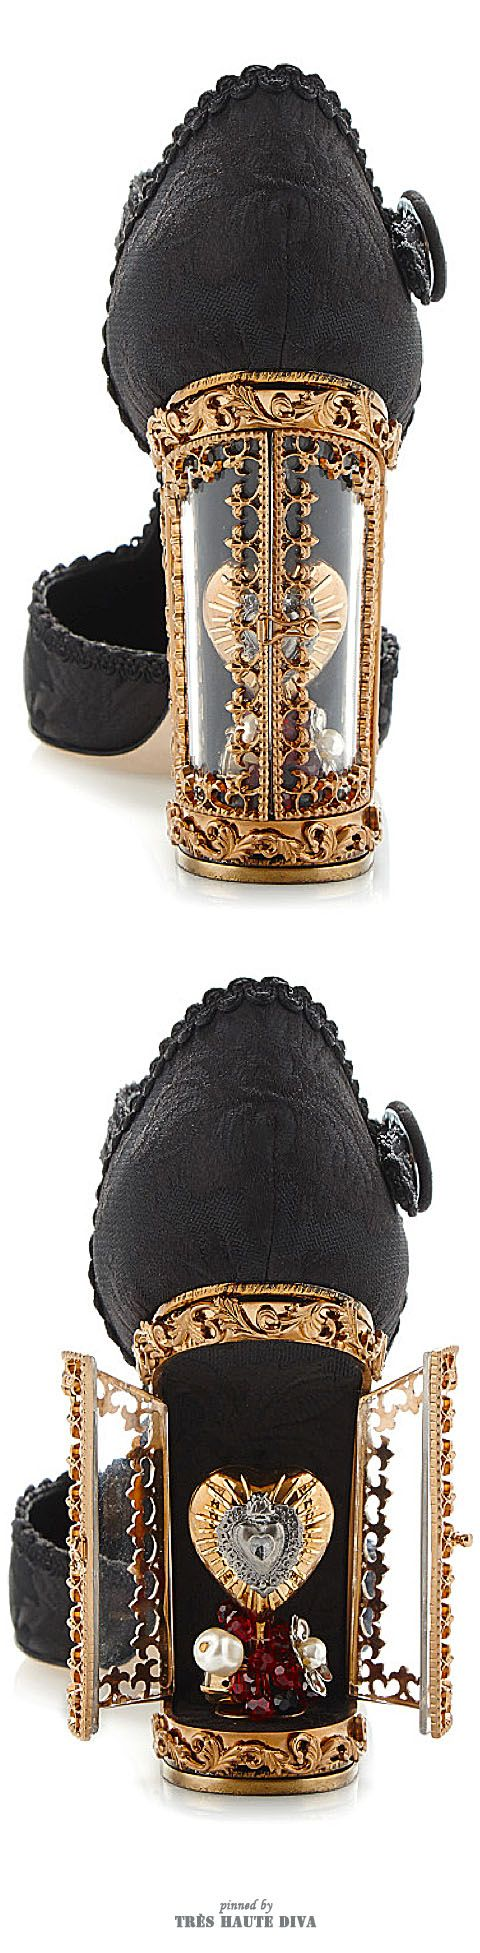 Dolce & Gabbana Black Jacquard T-Strap Mary Jane With Window Pane Pump ♔ SS 2015 ♔ Tres Haute Diva (aka Ridiculous!)